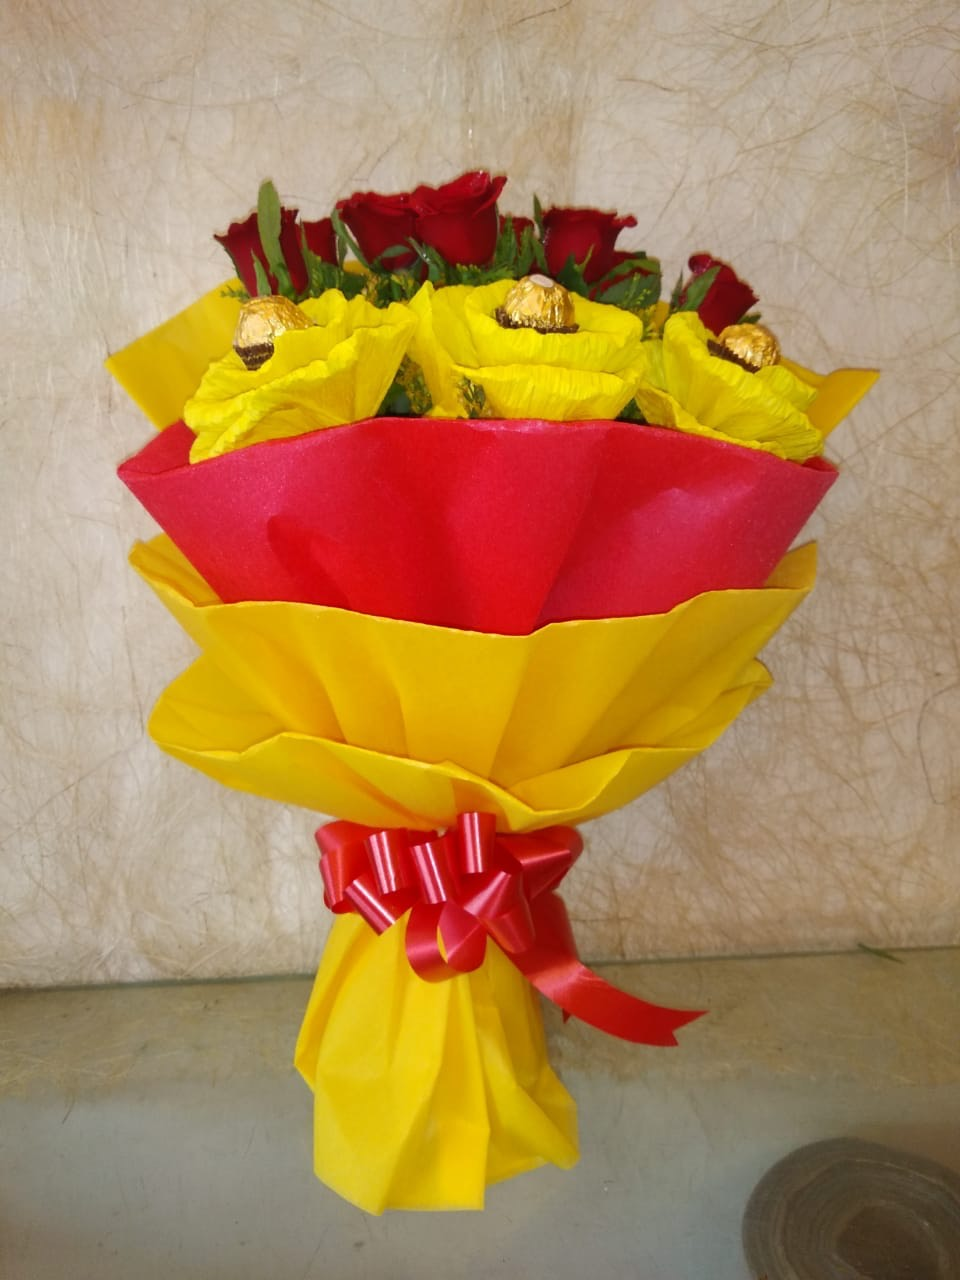 Flowers Delivery in Sector 80 GurgaonRed Roses Ferrero Rocher Bunch